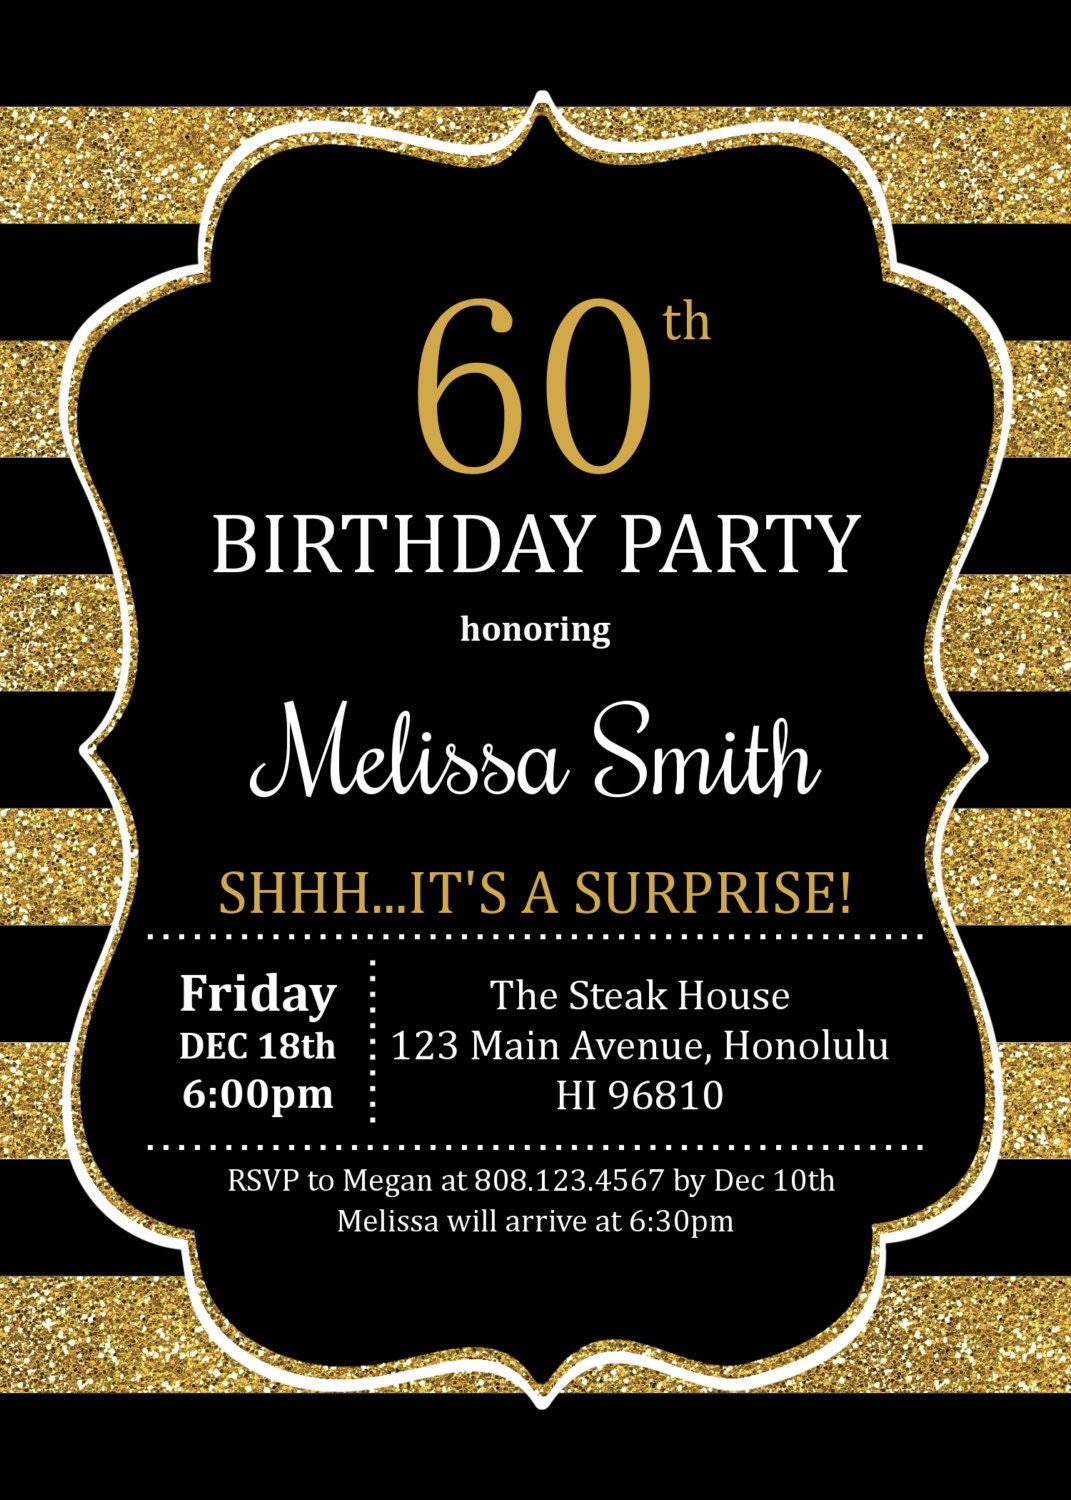 60th birthday invitations surprise birthday invitation adult 60th birthday invitations surprise birthday invitation adult birthday party gold glitter silver filmwisefo Image collections